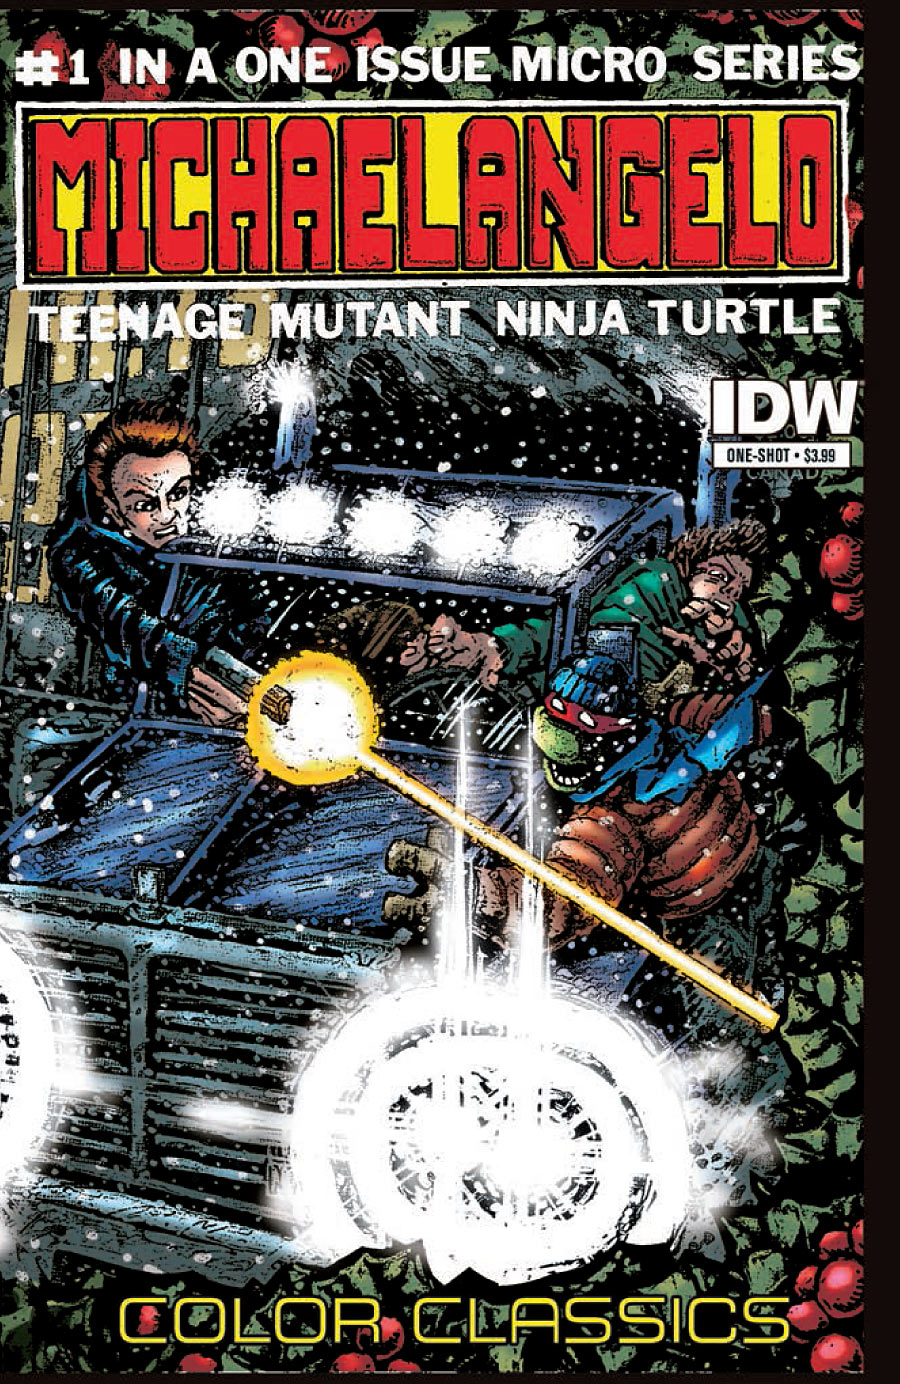 TMNT Color Classics Micro Series Michelangelo 1 c Weekly Comic Reviews 12/5